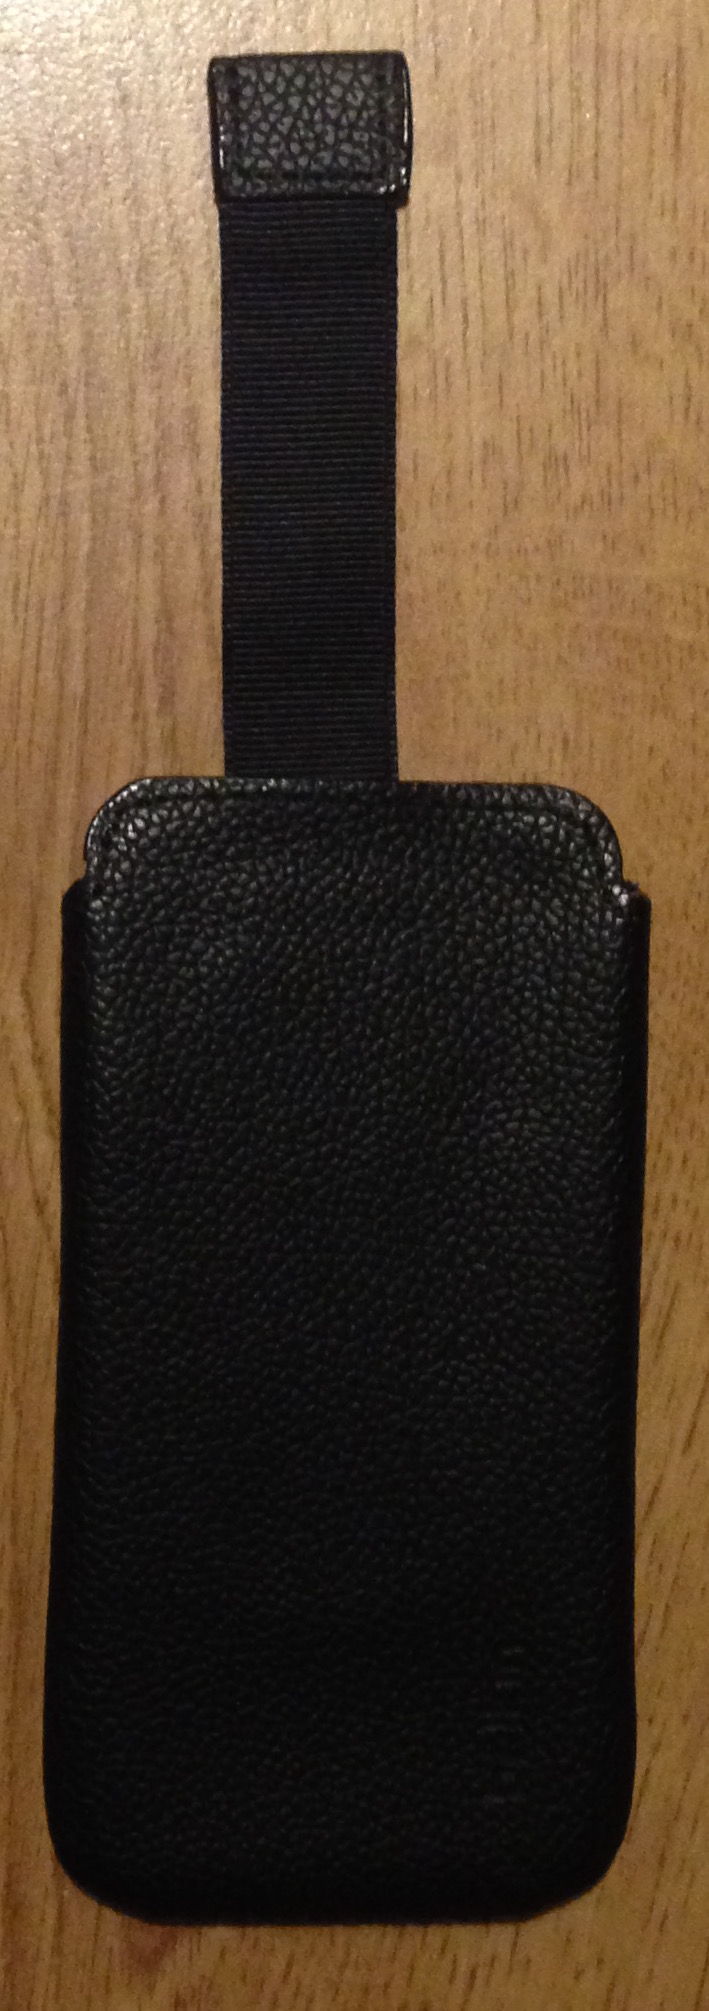 belkin iphone 5/5s leather pouch